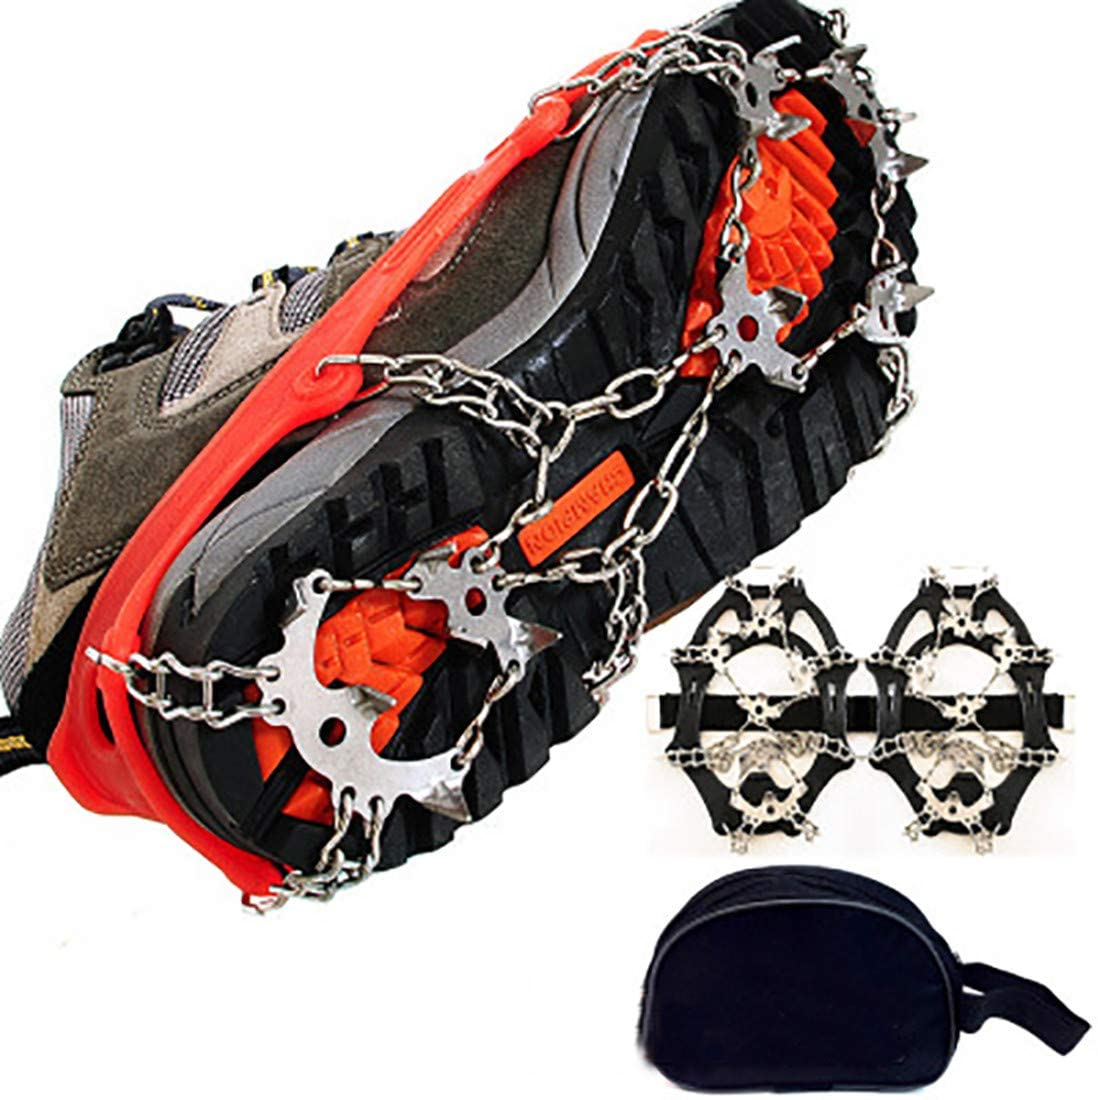 ZHL 1 Pair 18-Teeth Stainless Steel Ice Gripper Spike Shoes Outdoor Anti Slip Climbing Snow Spikes Crampons Cleats Chain Claws Grips